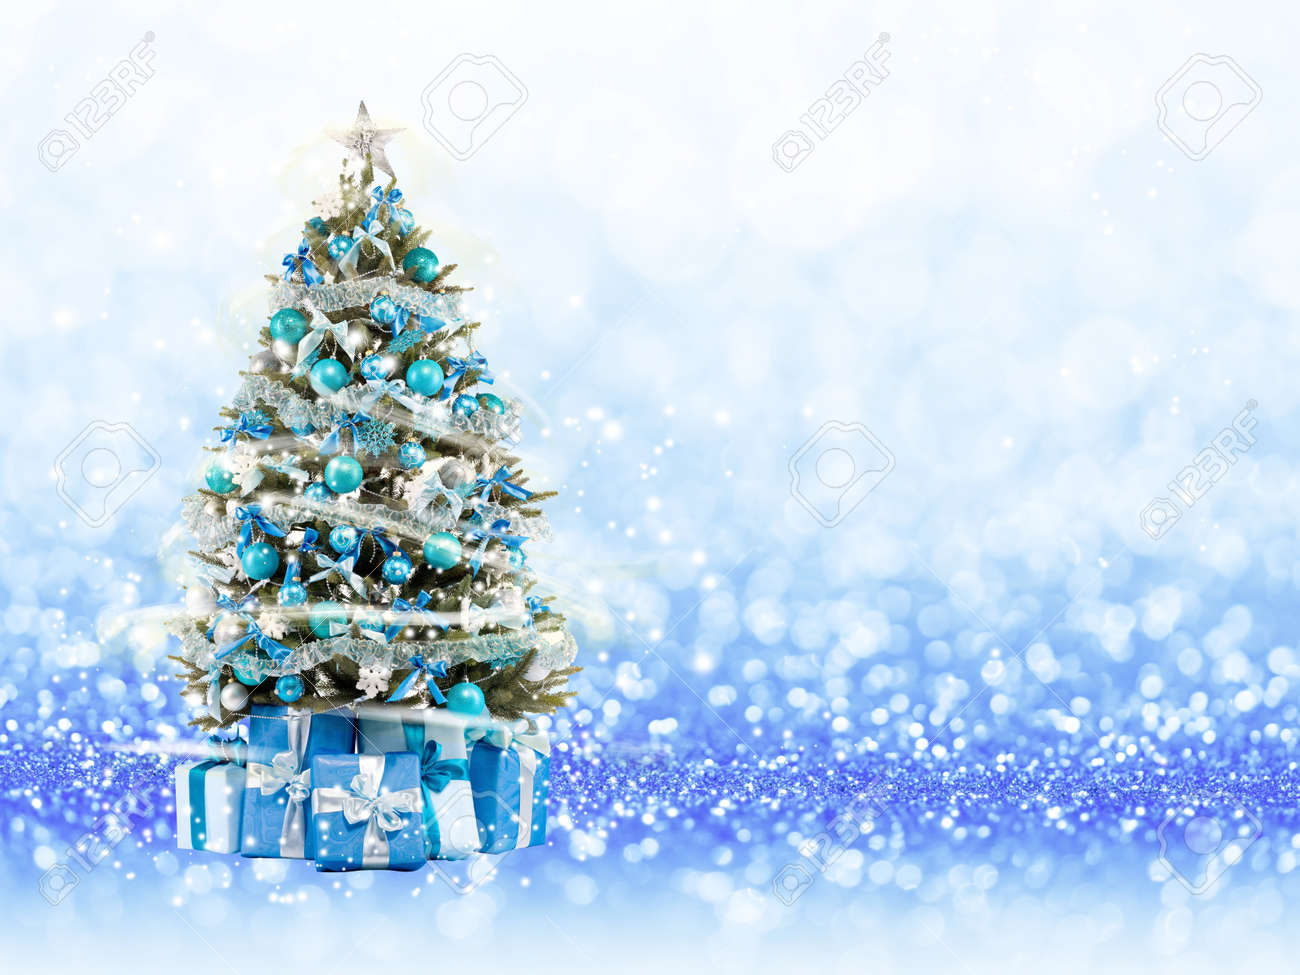 Christmas Tree From The Xmas Lights Play With The Light Blue Stock Photo Picture And Royalty Free Image Image 49266876